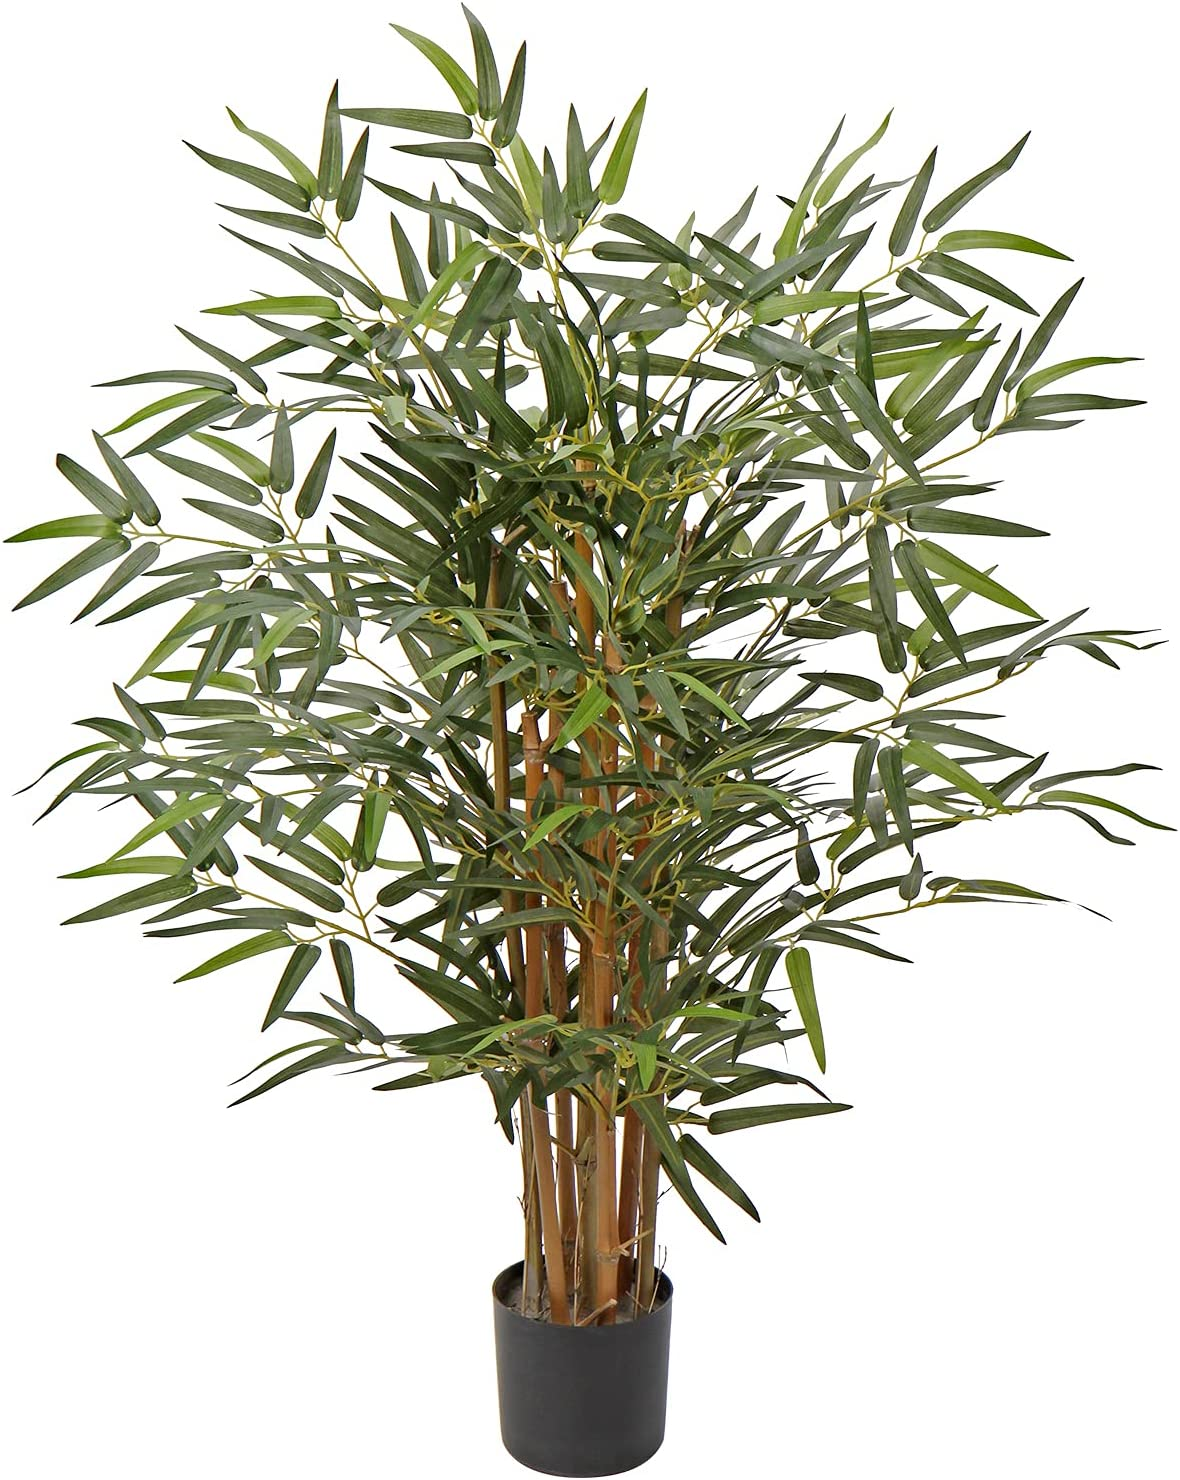 3 Ft / 4 Ft / 5 Ft / 6Ft Artificial Tree Bamboo Silk Plant Artificial Bamboo Tree in Pot Fake Greenery Floor Plants for Home Office Indoor Outdoor Decor (3FT Tree #01)